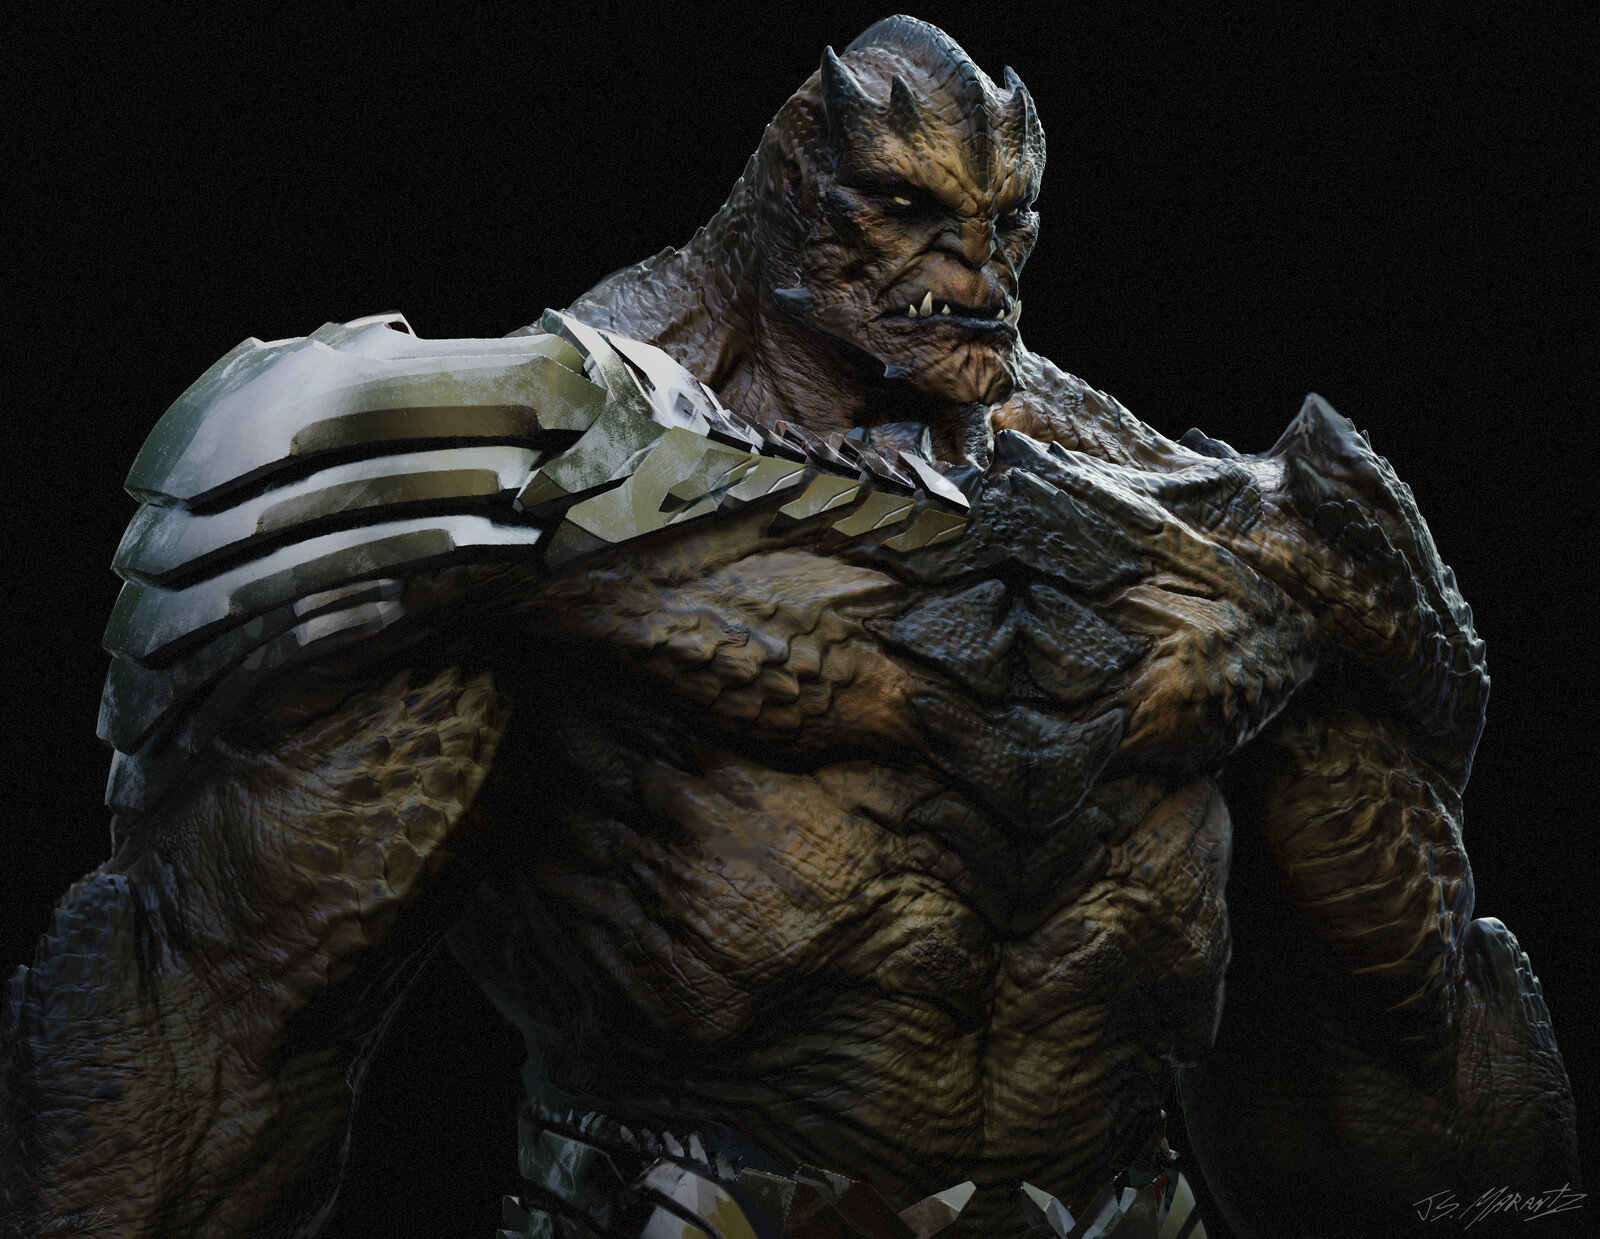 Cull Obsidian Early Designs for Avengers Infinity War